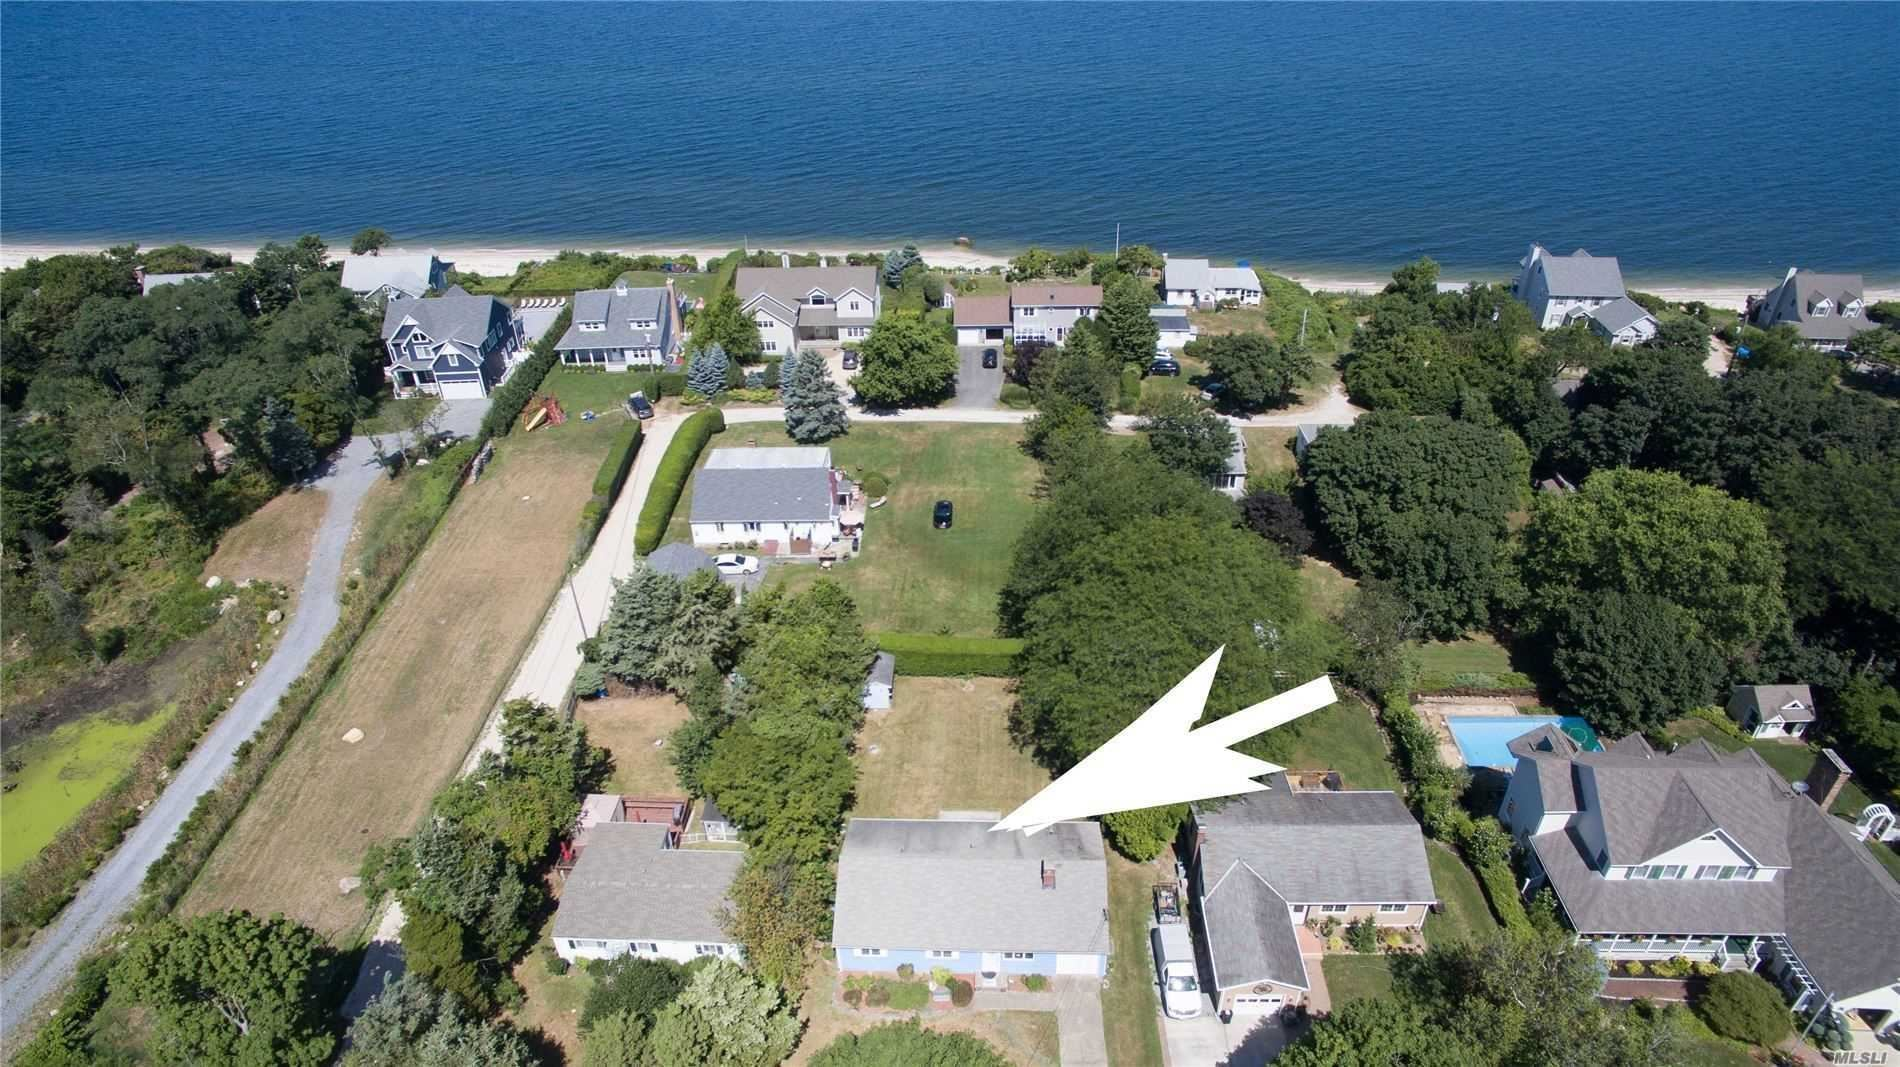 873 Sound Shore Road, Jamesport, NY 11947 - MLS#: 3196470